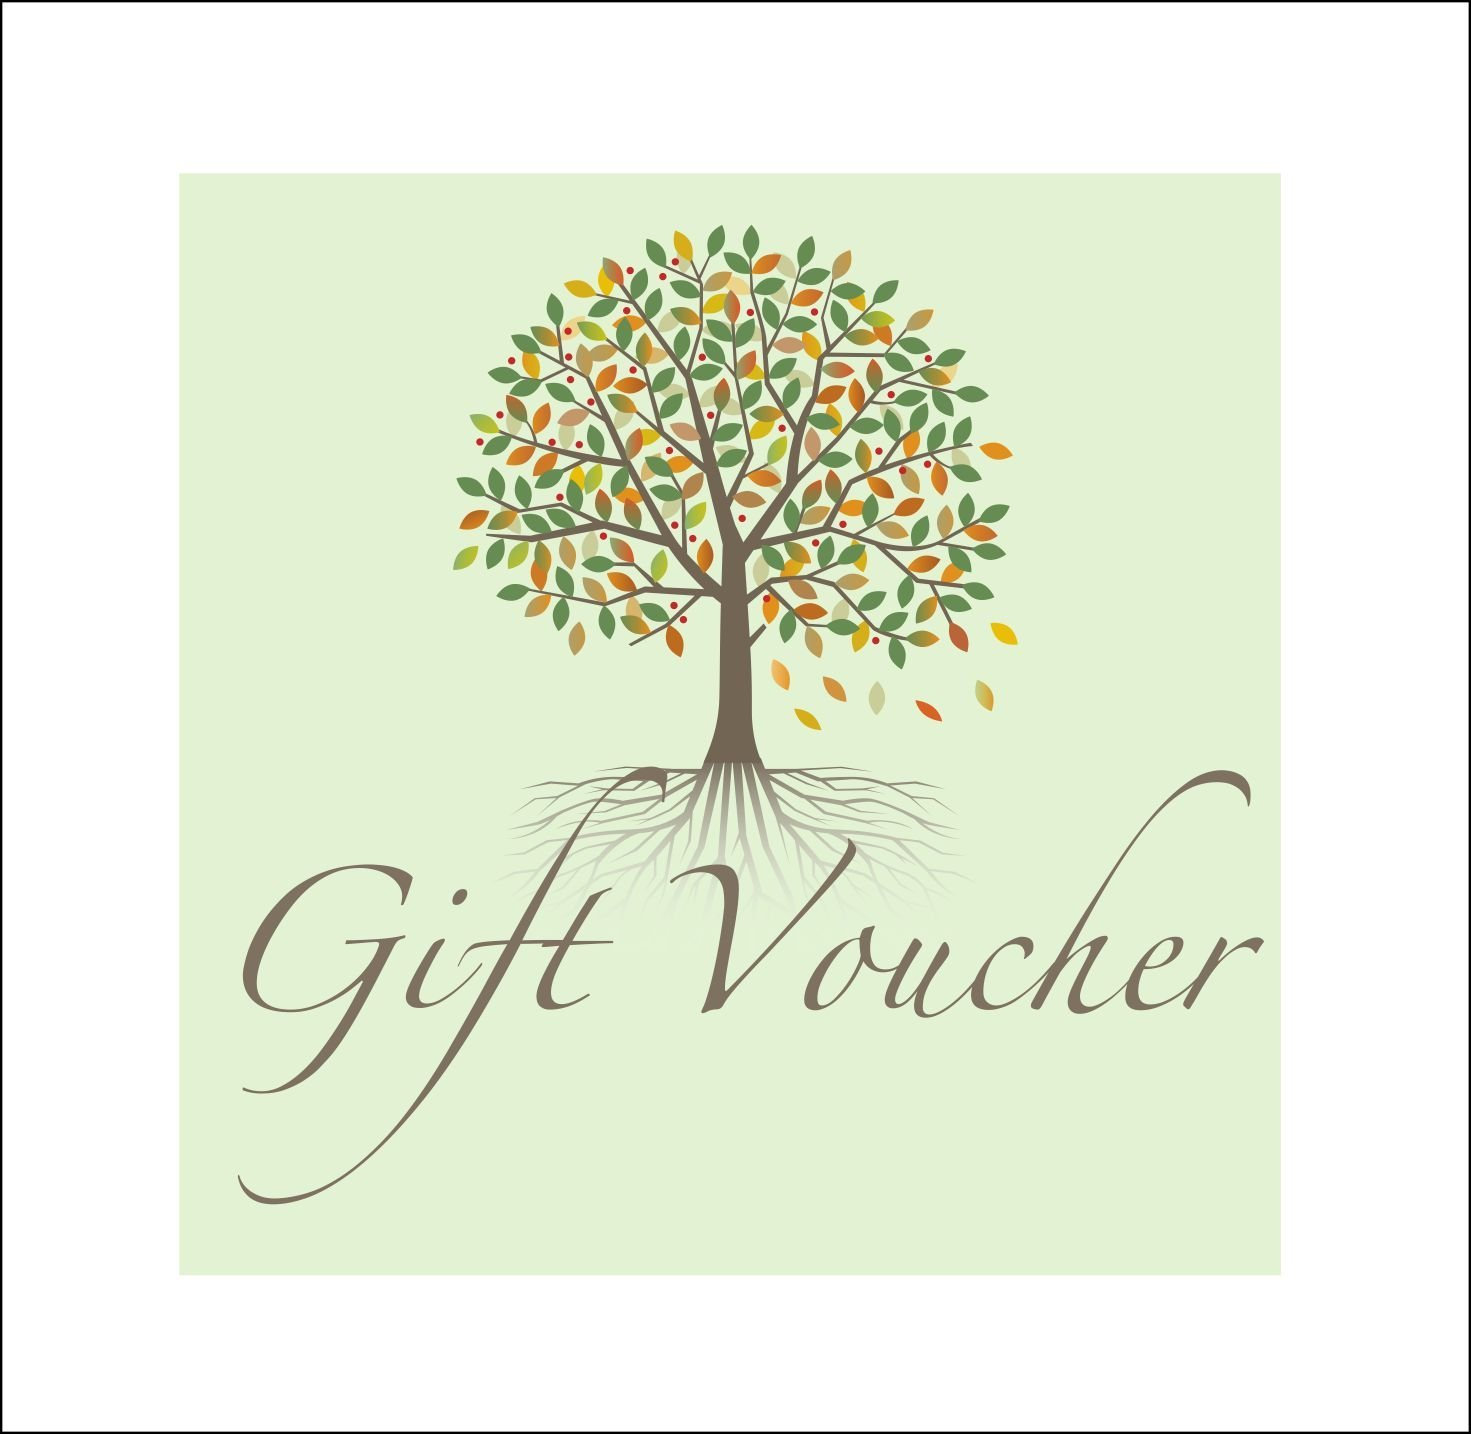 Gift voucher scattering ashes memorial sympathy gift voucher negle Images